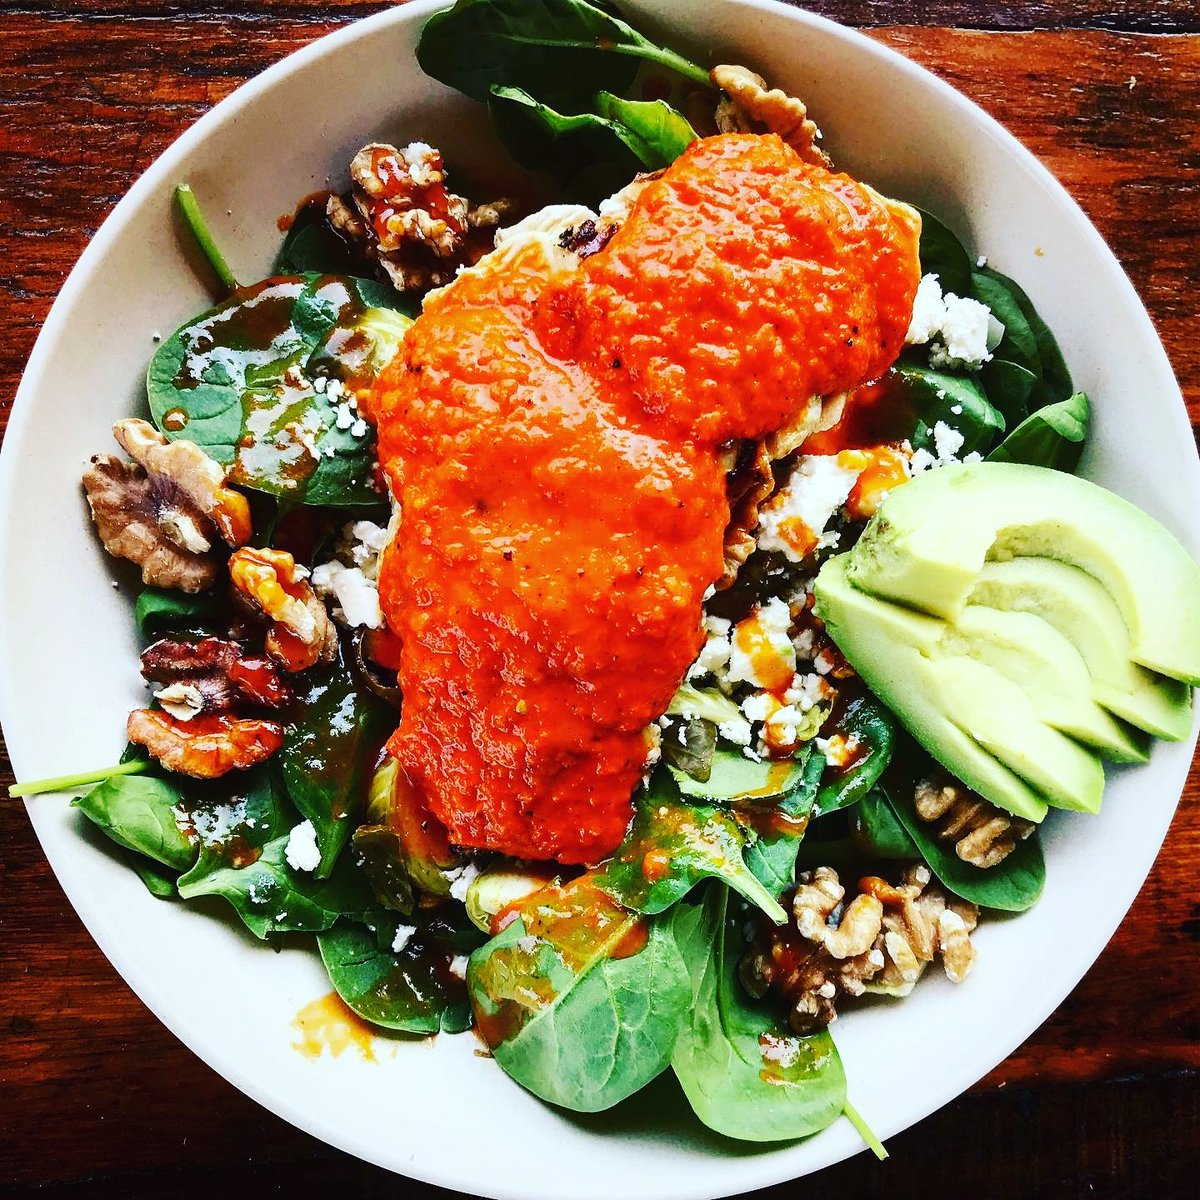 This beautiful dish proves you can eat healthy & not have to sacrifice flavor. Come enjoy a Harissa Chicken Power Bowl at Satellite tonight! 512-288-9994 for reservations or https://t.co/AjolCVgvAL to order & pick up #curbside. #satelliteatx https://t.co/vP6UraV9ic